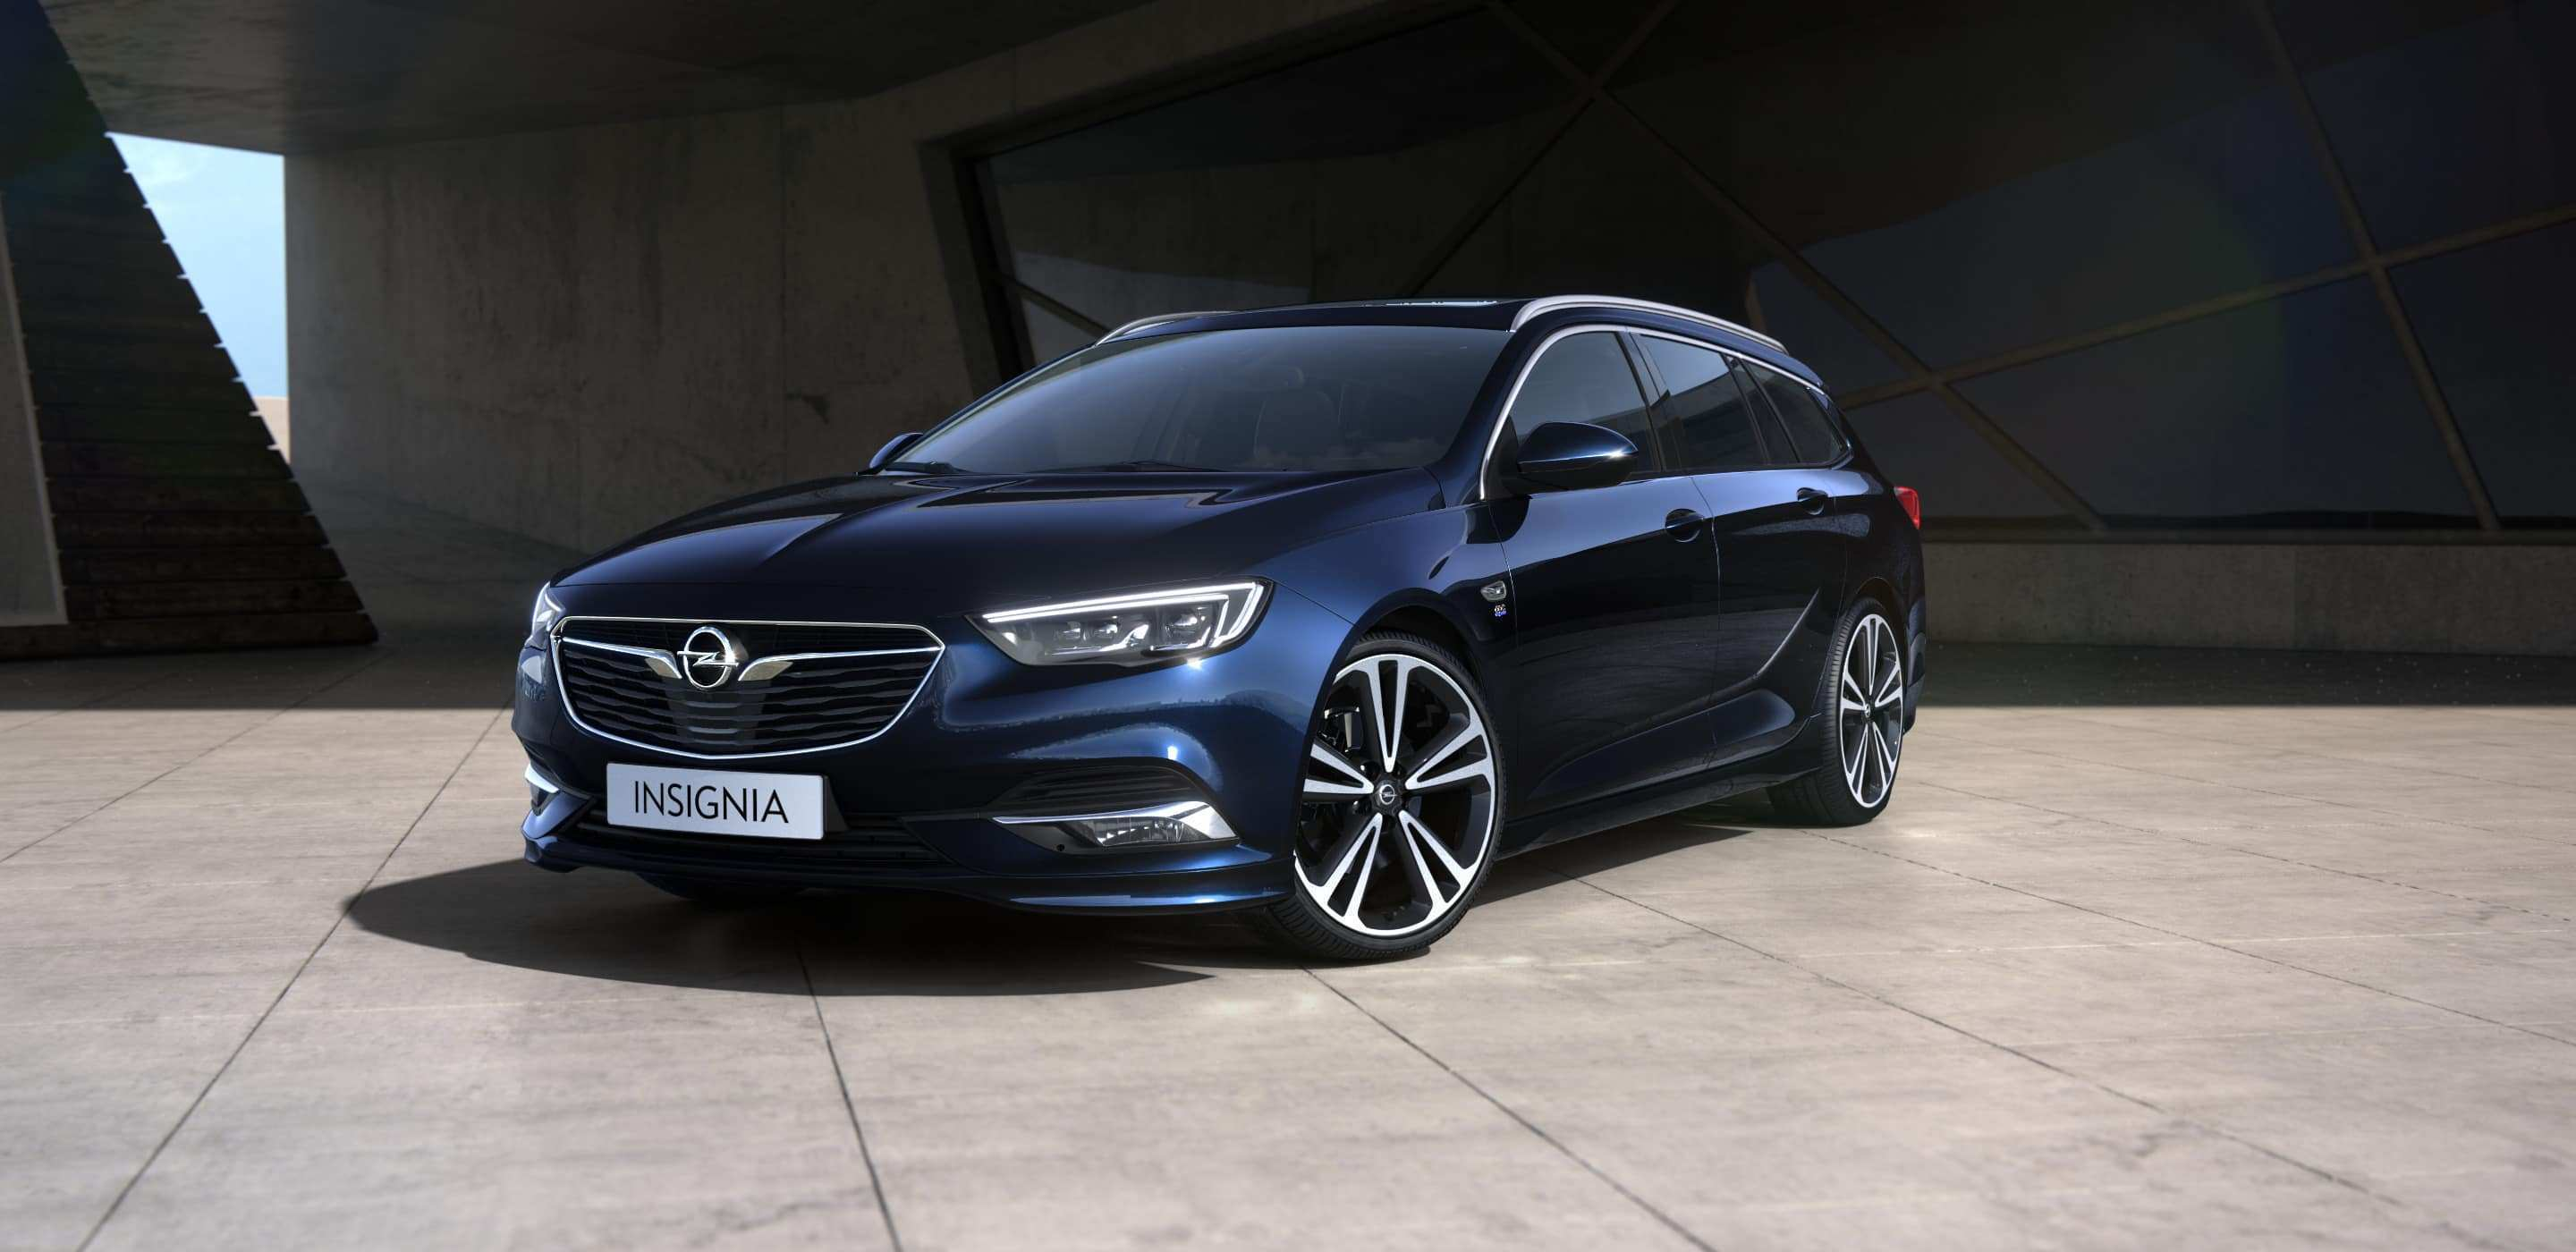 65 The Best 2020 New Opel Insignia Photos